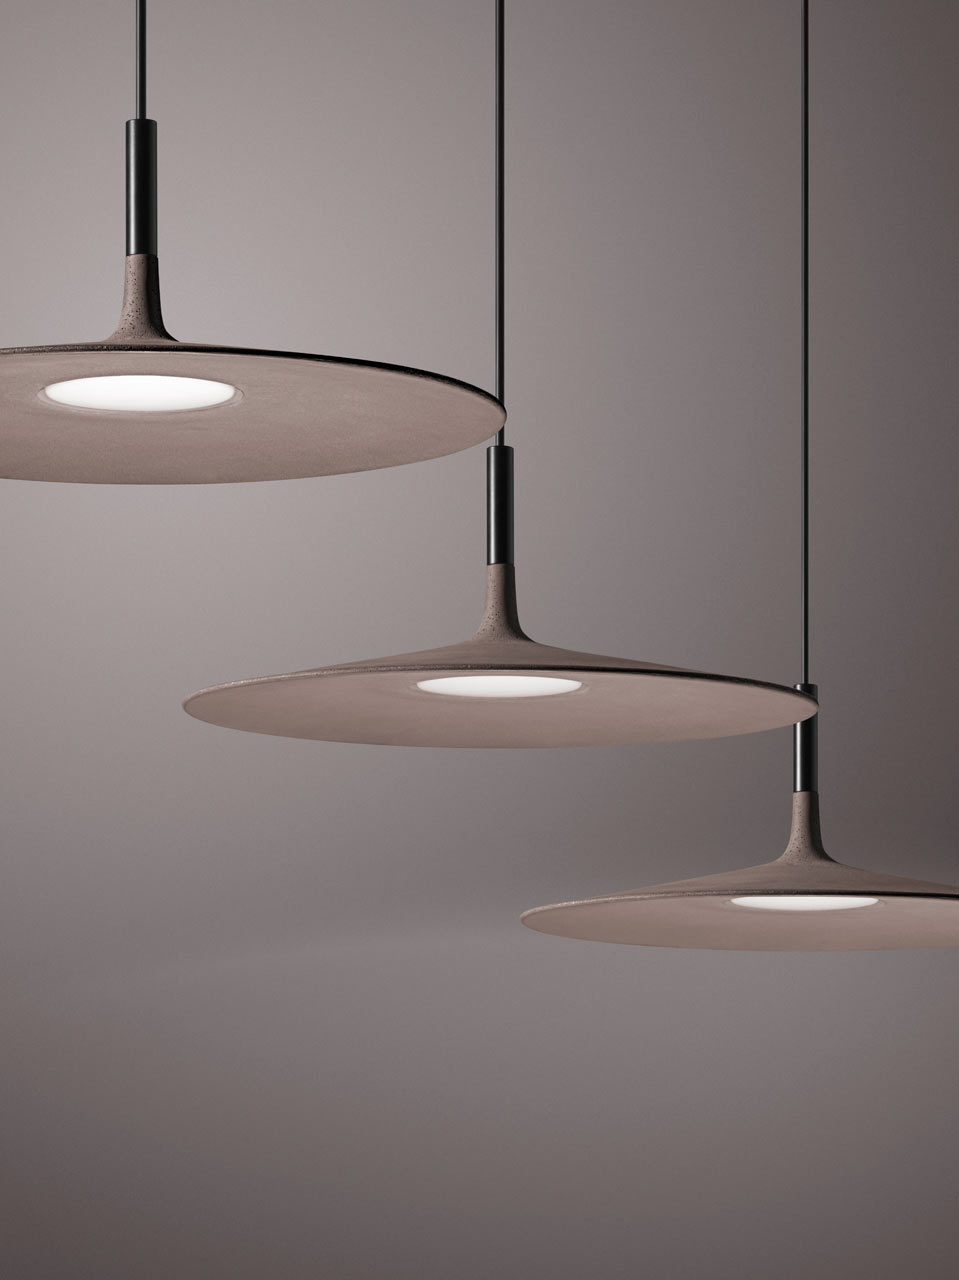 Foscarini Lights A Super Thin Concrete Lamp From Foscarini Design Milk